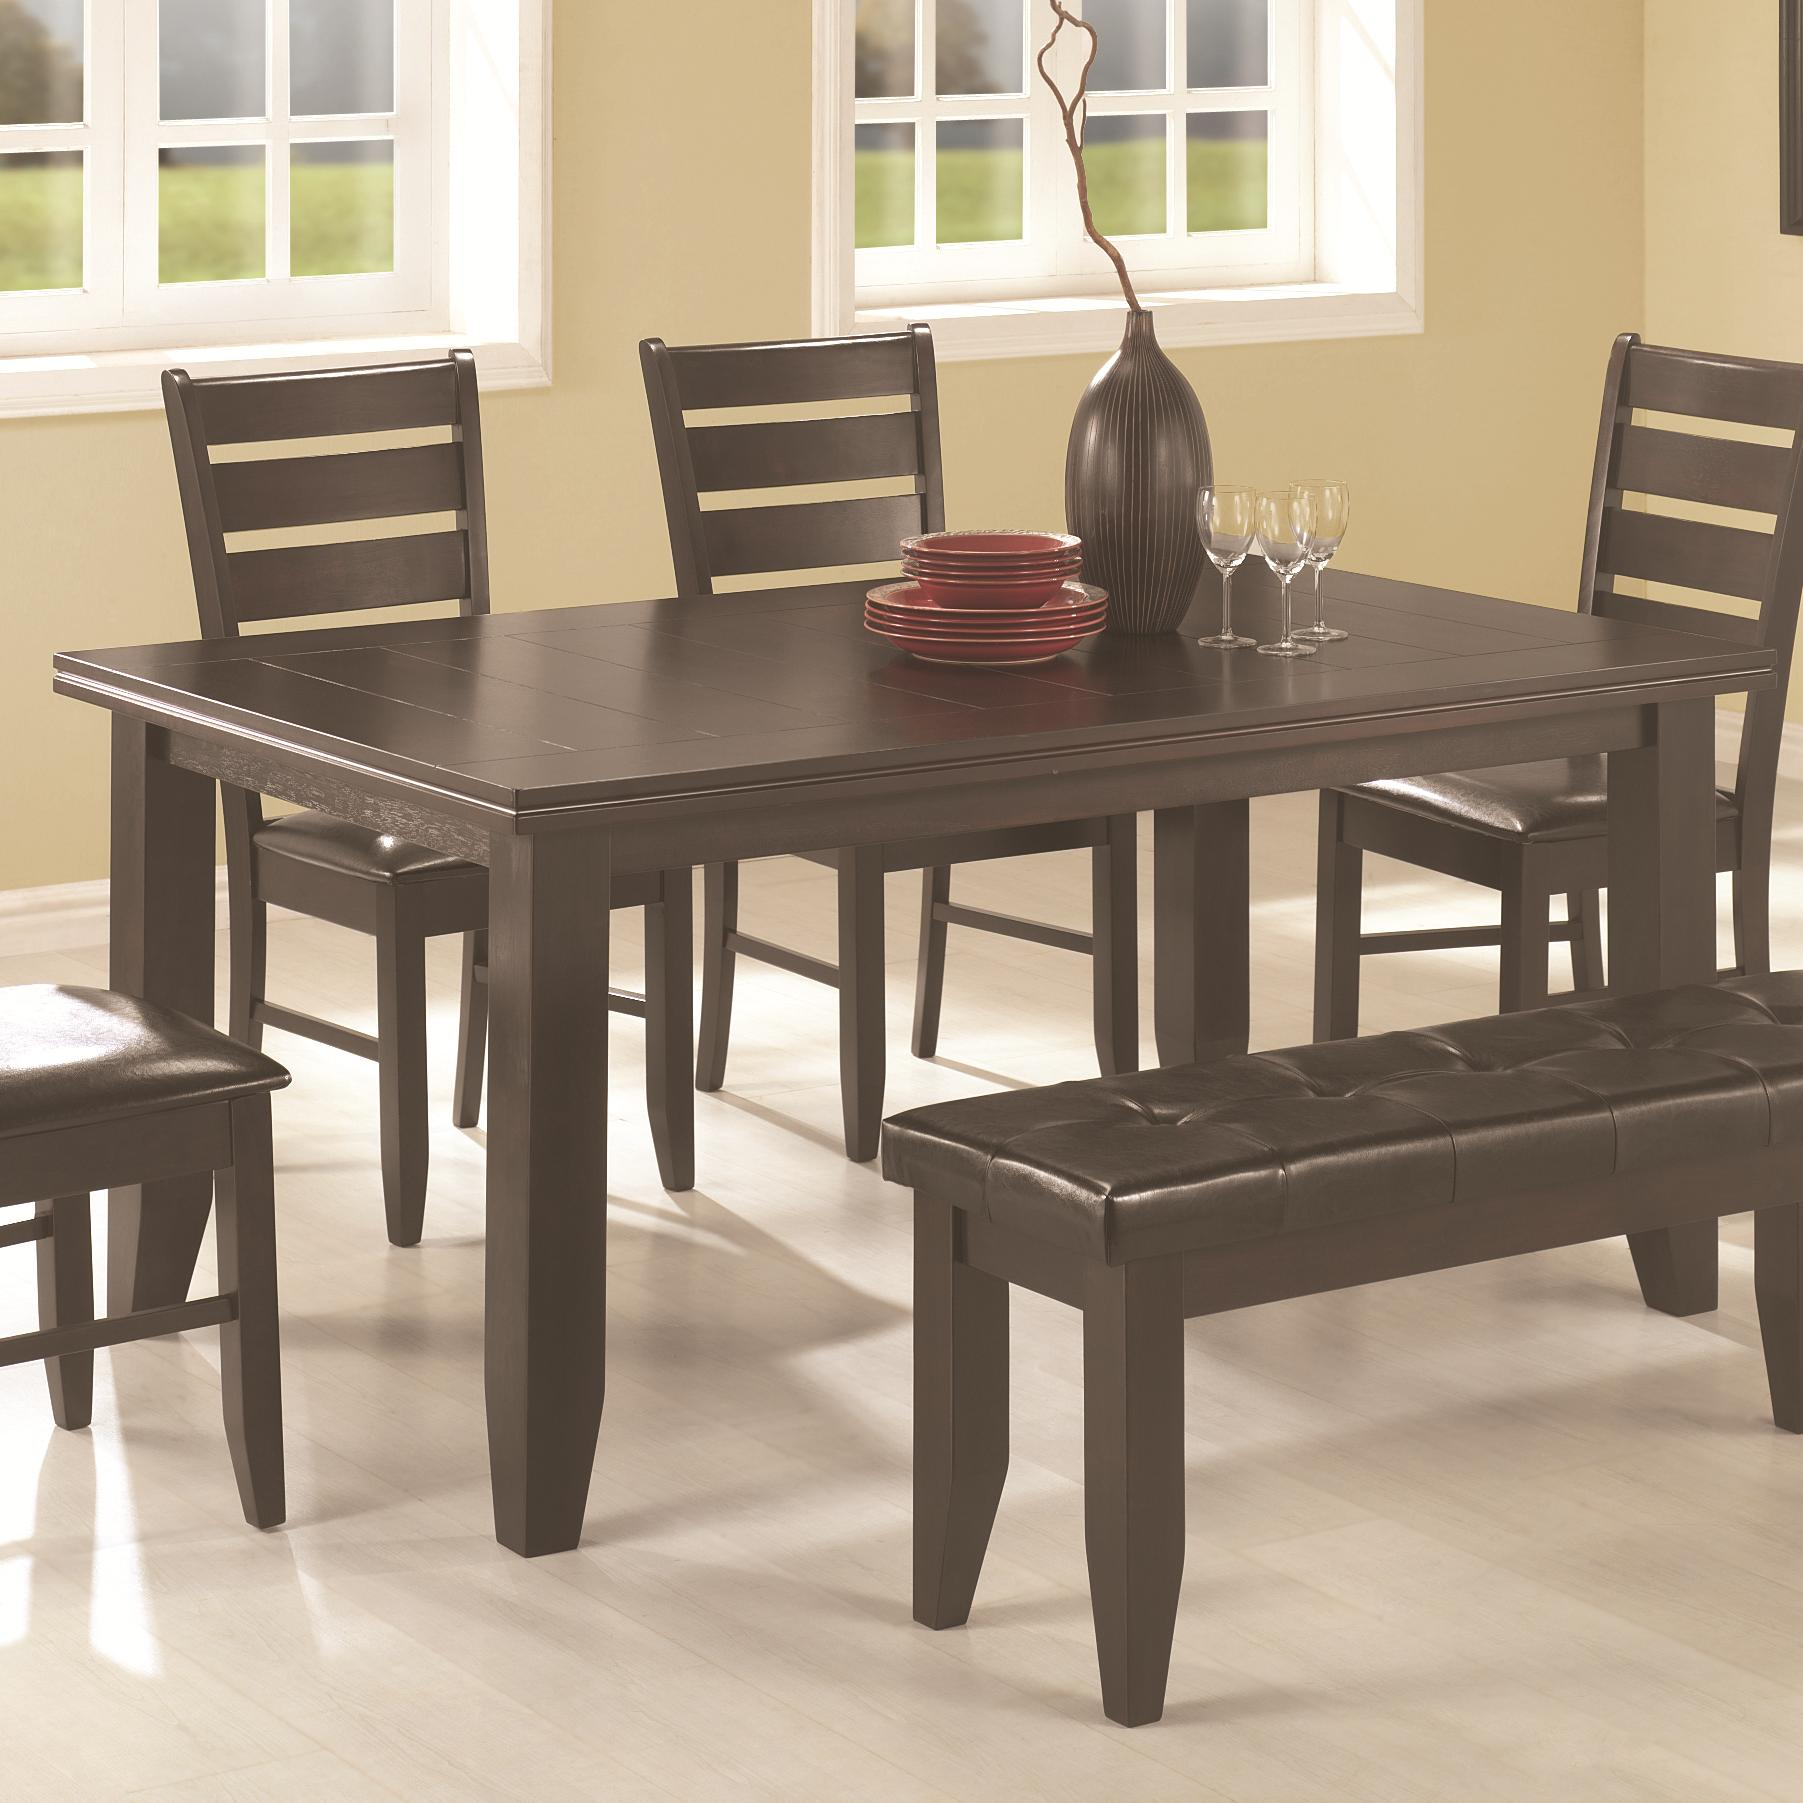 Coaster page 102721 contemporary rectangular semi formal for Contemporary rectangular dining table